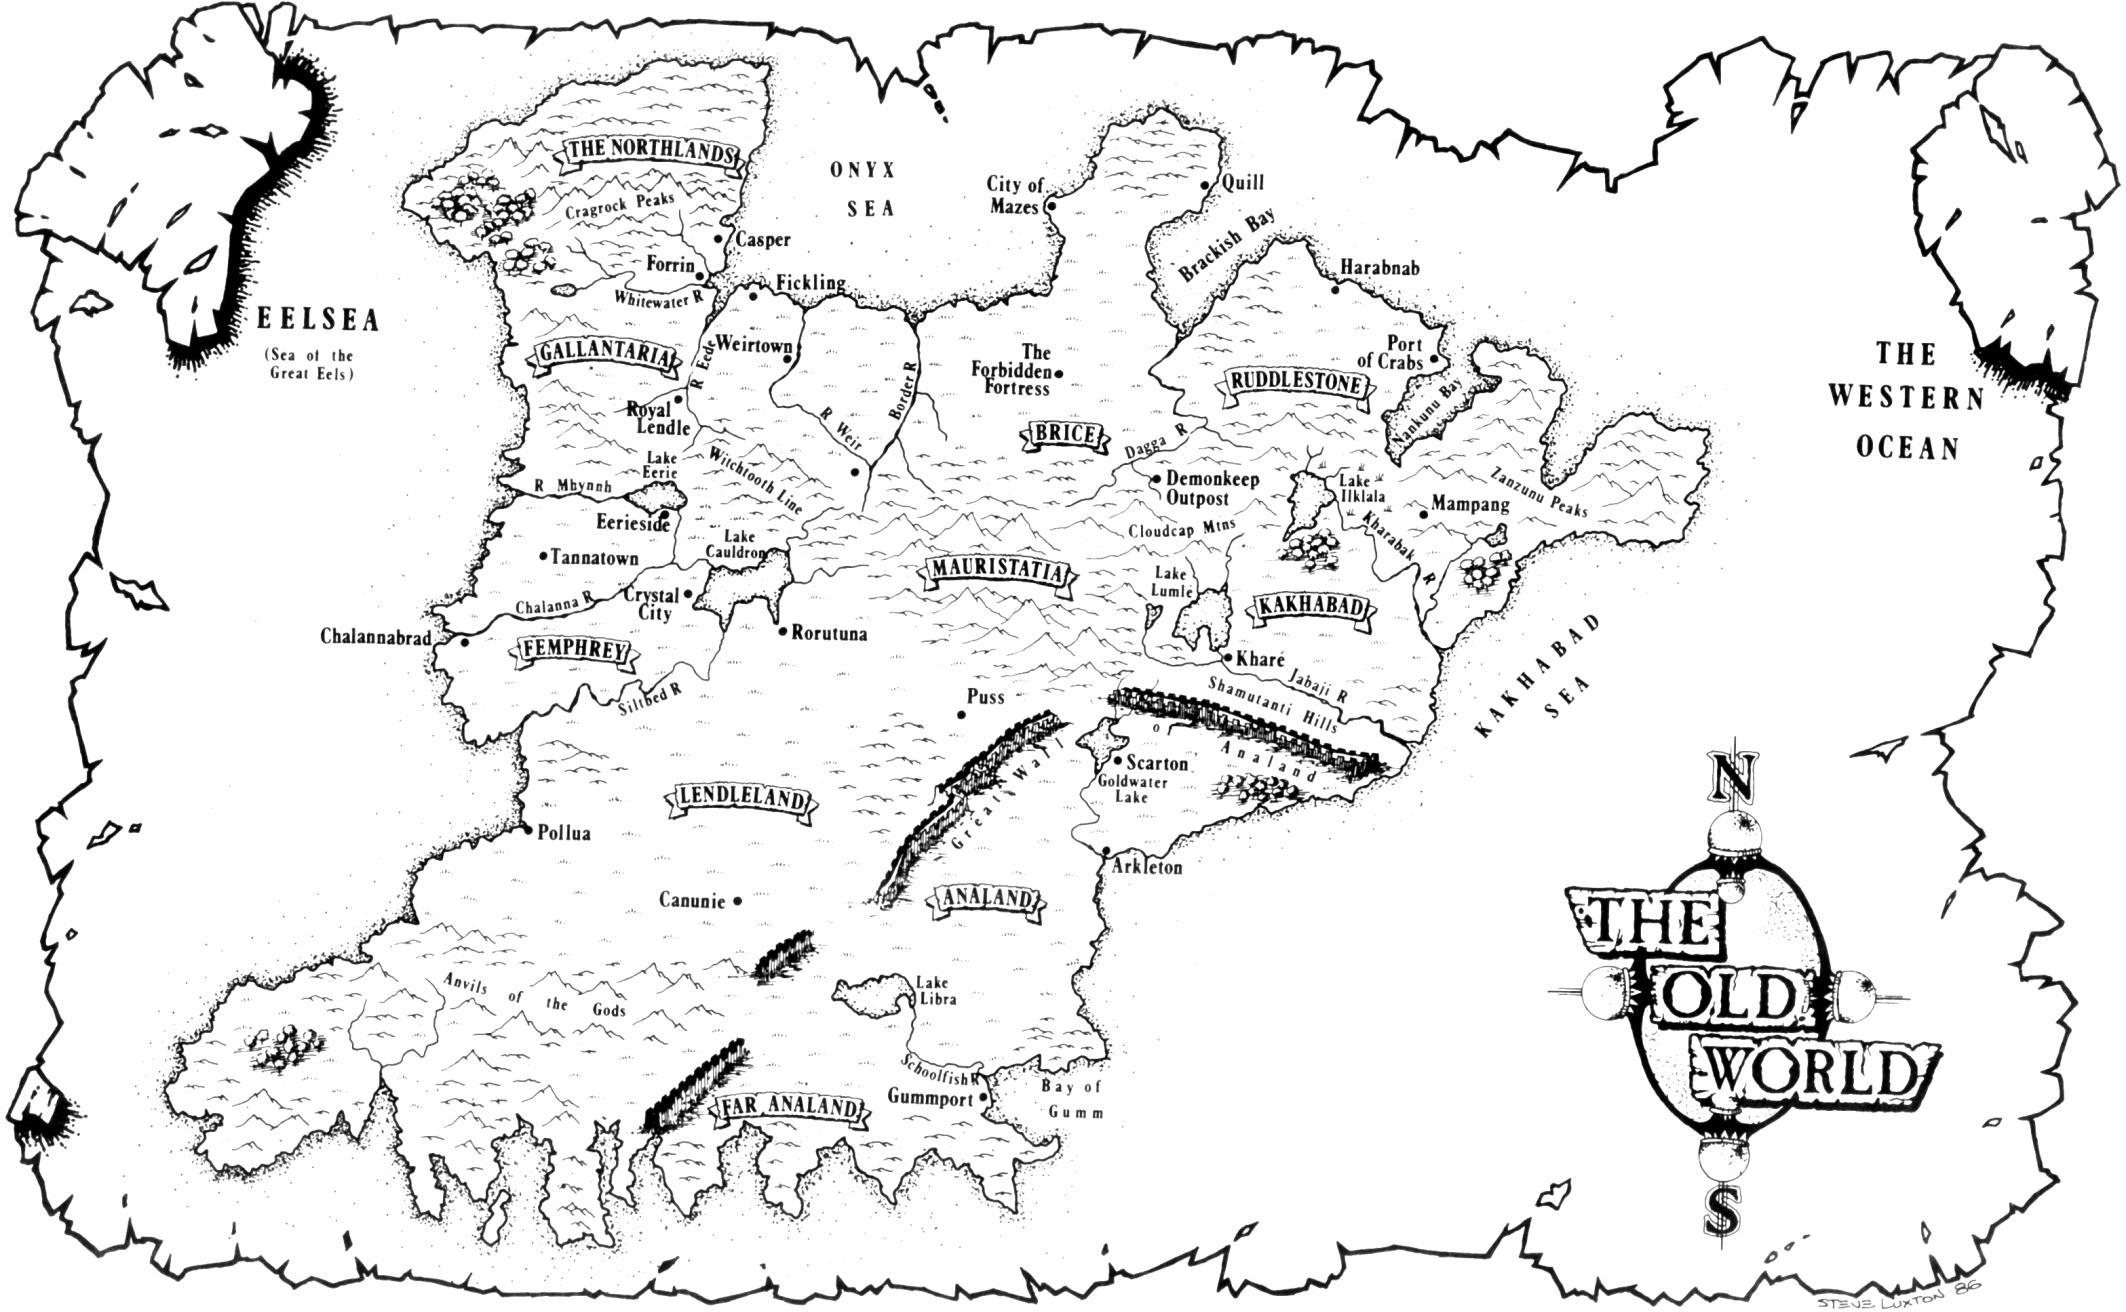 Image Old World Mapjpg Titannica FANDOM Powered By Wikia - Old world map black and white